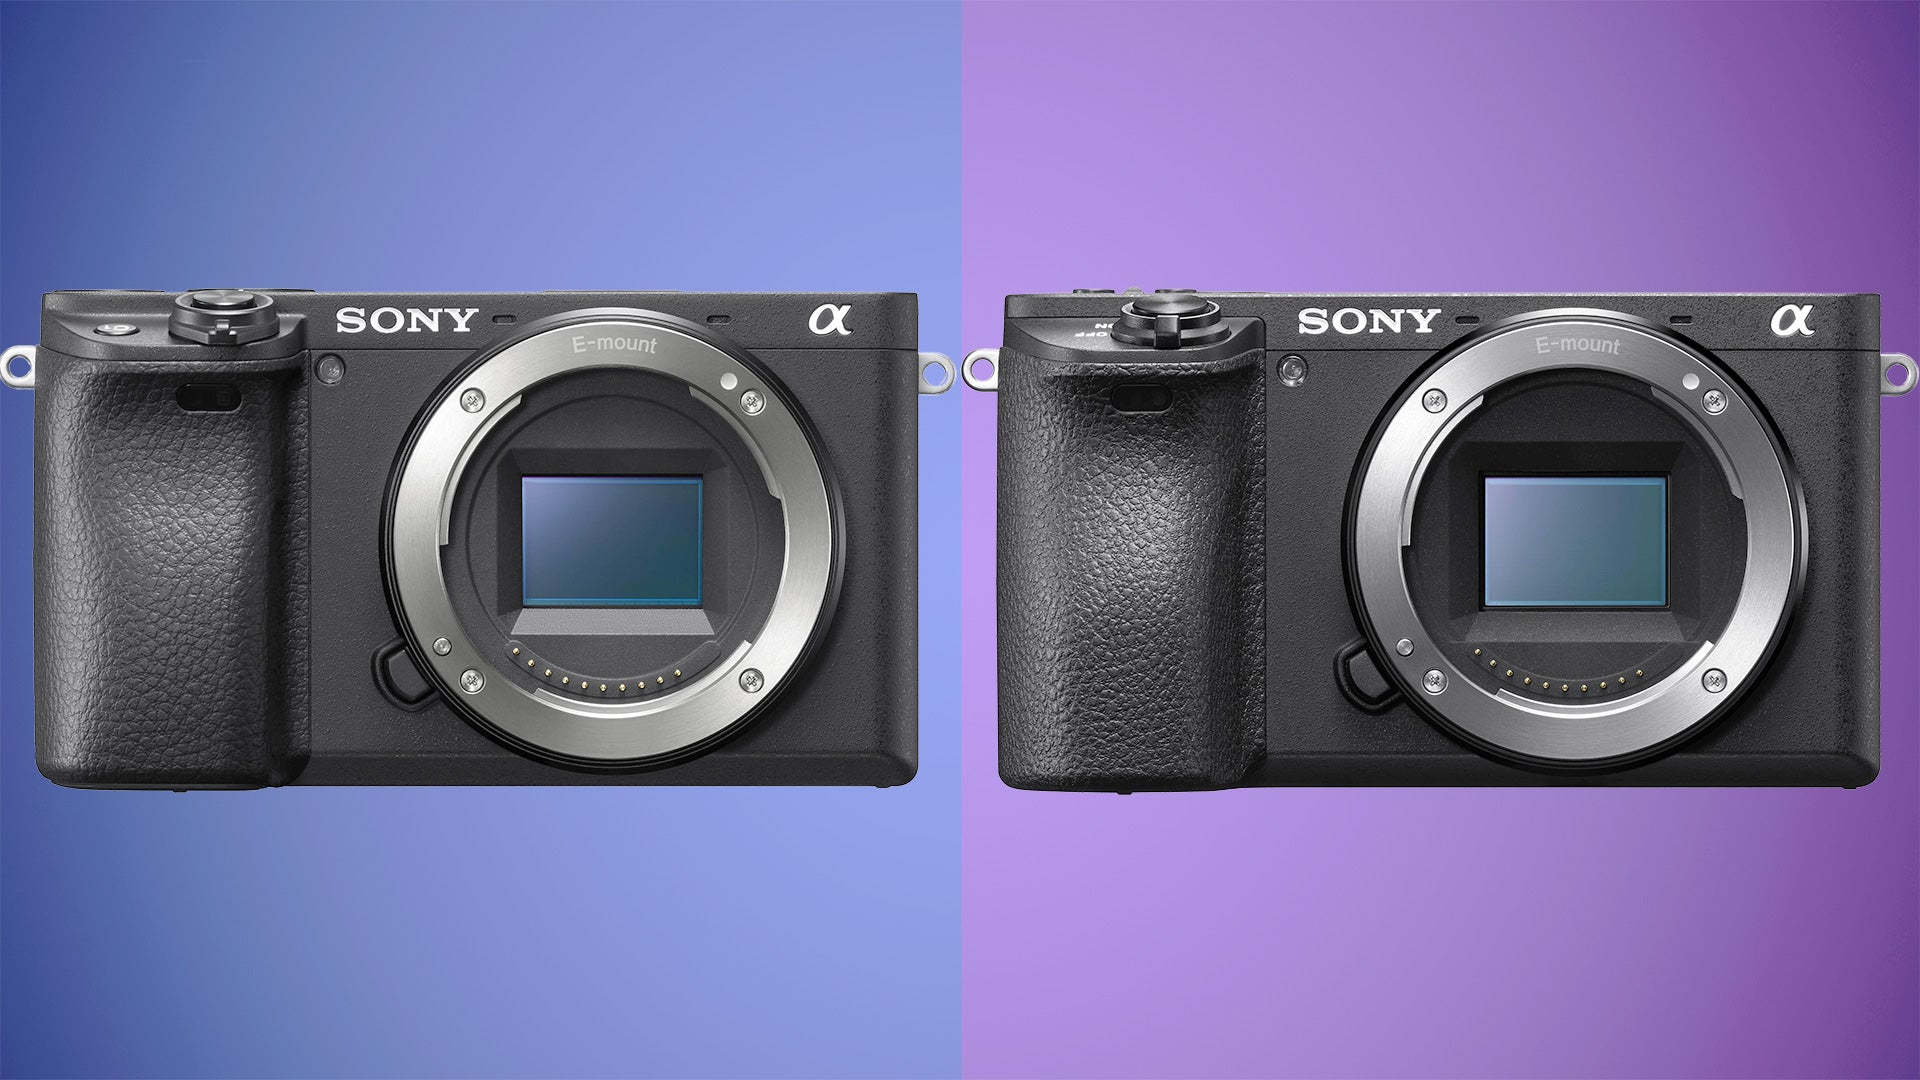 Sony Alpha A6400 vs A6500: Which should you buy? | Trusted Reviews